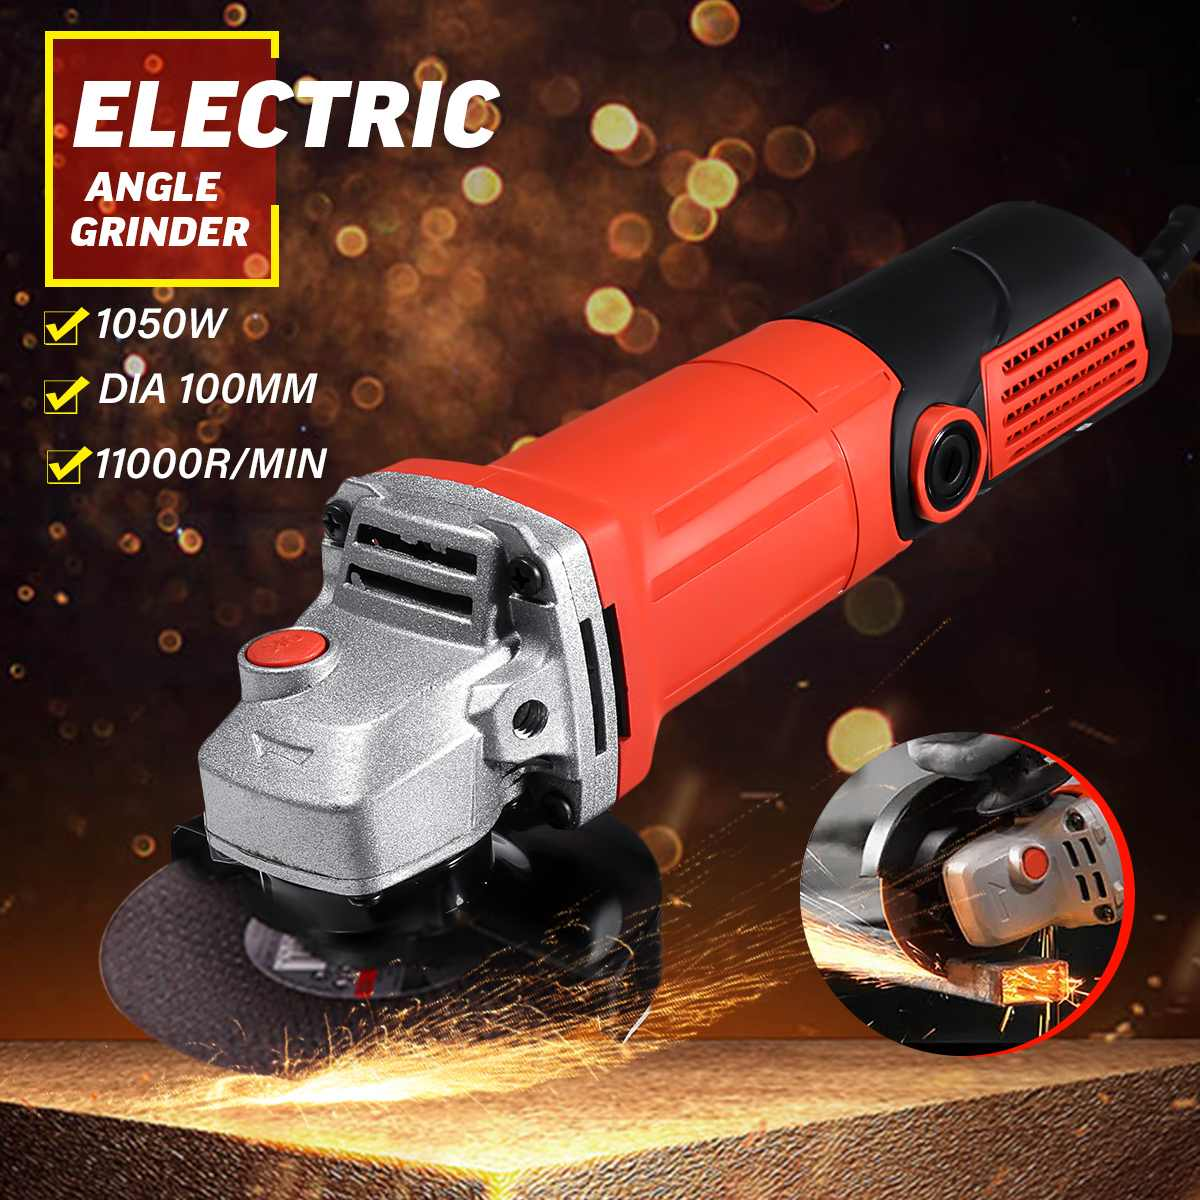 1600W 220V Electric Angle Grinder Anti-Slip Polishing Polisher Grinding Metal Stone Wood Cutting Woodworking Grinder Power Tool